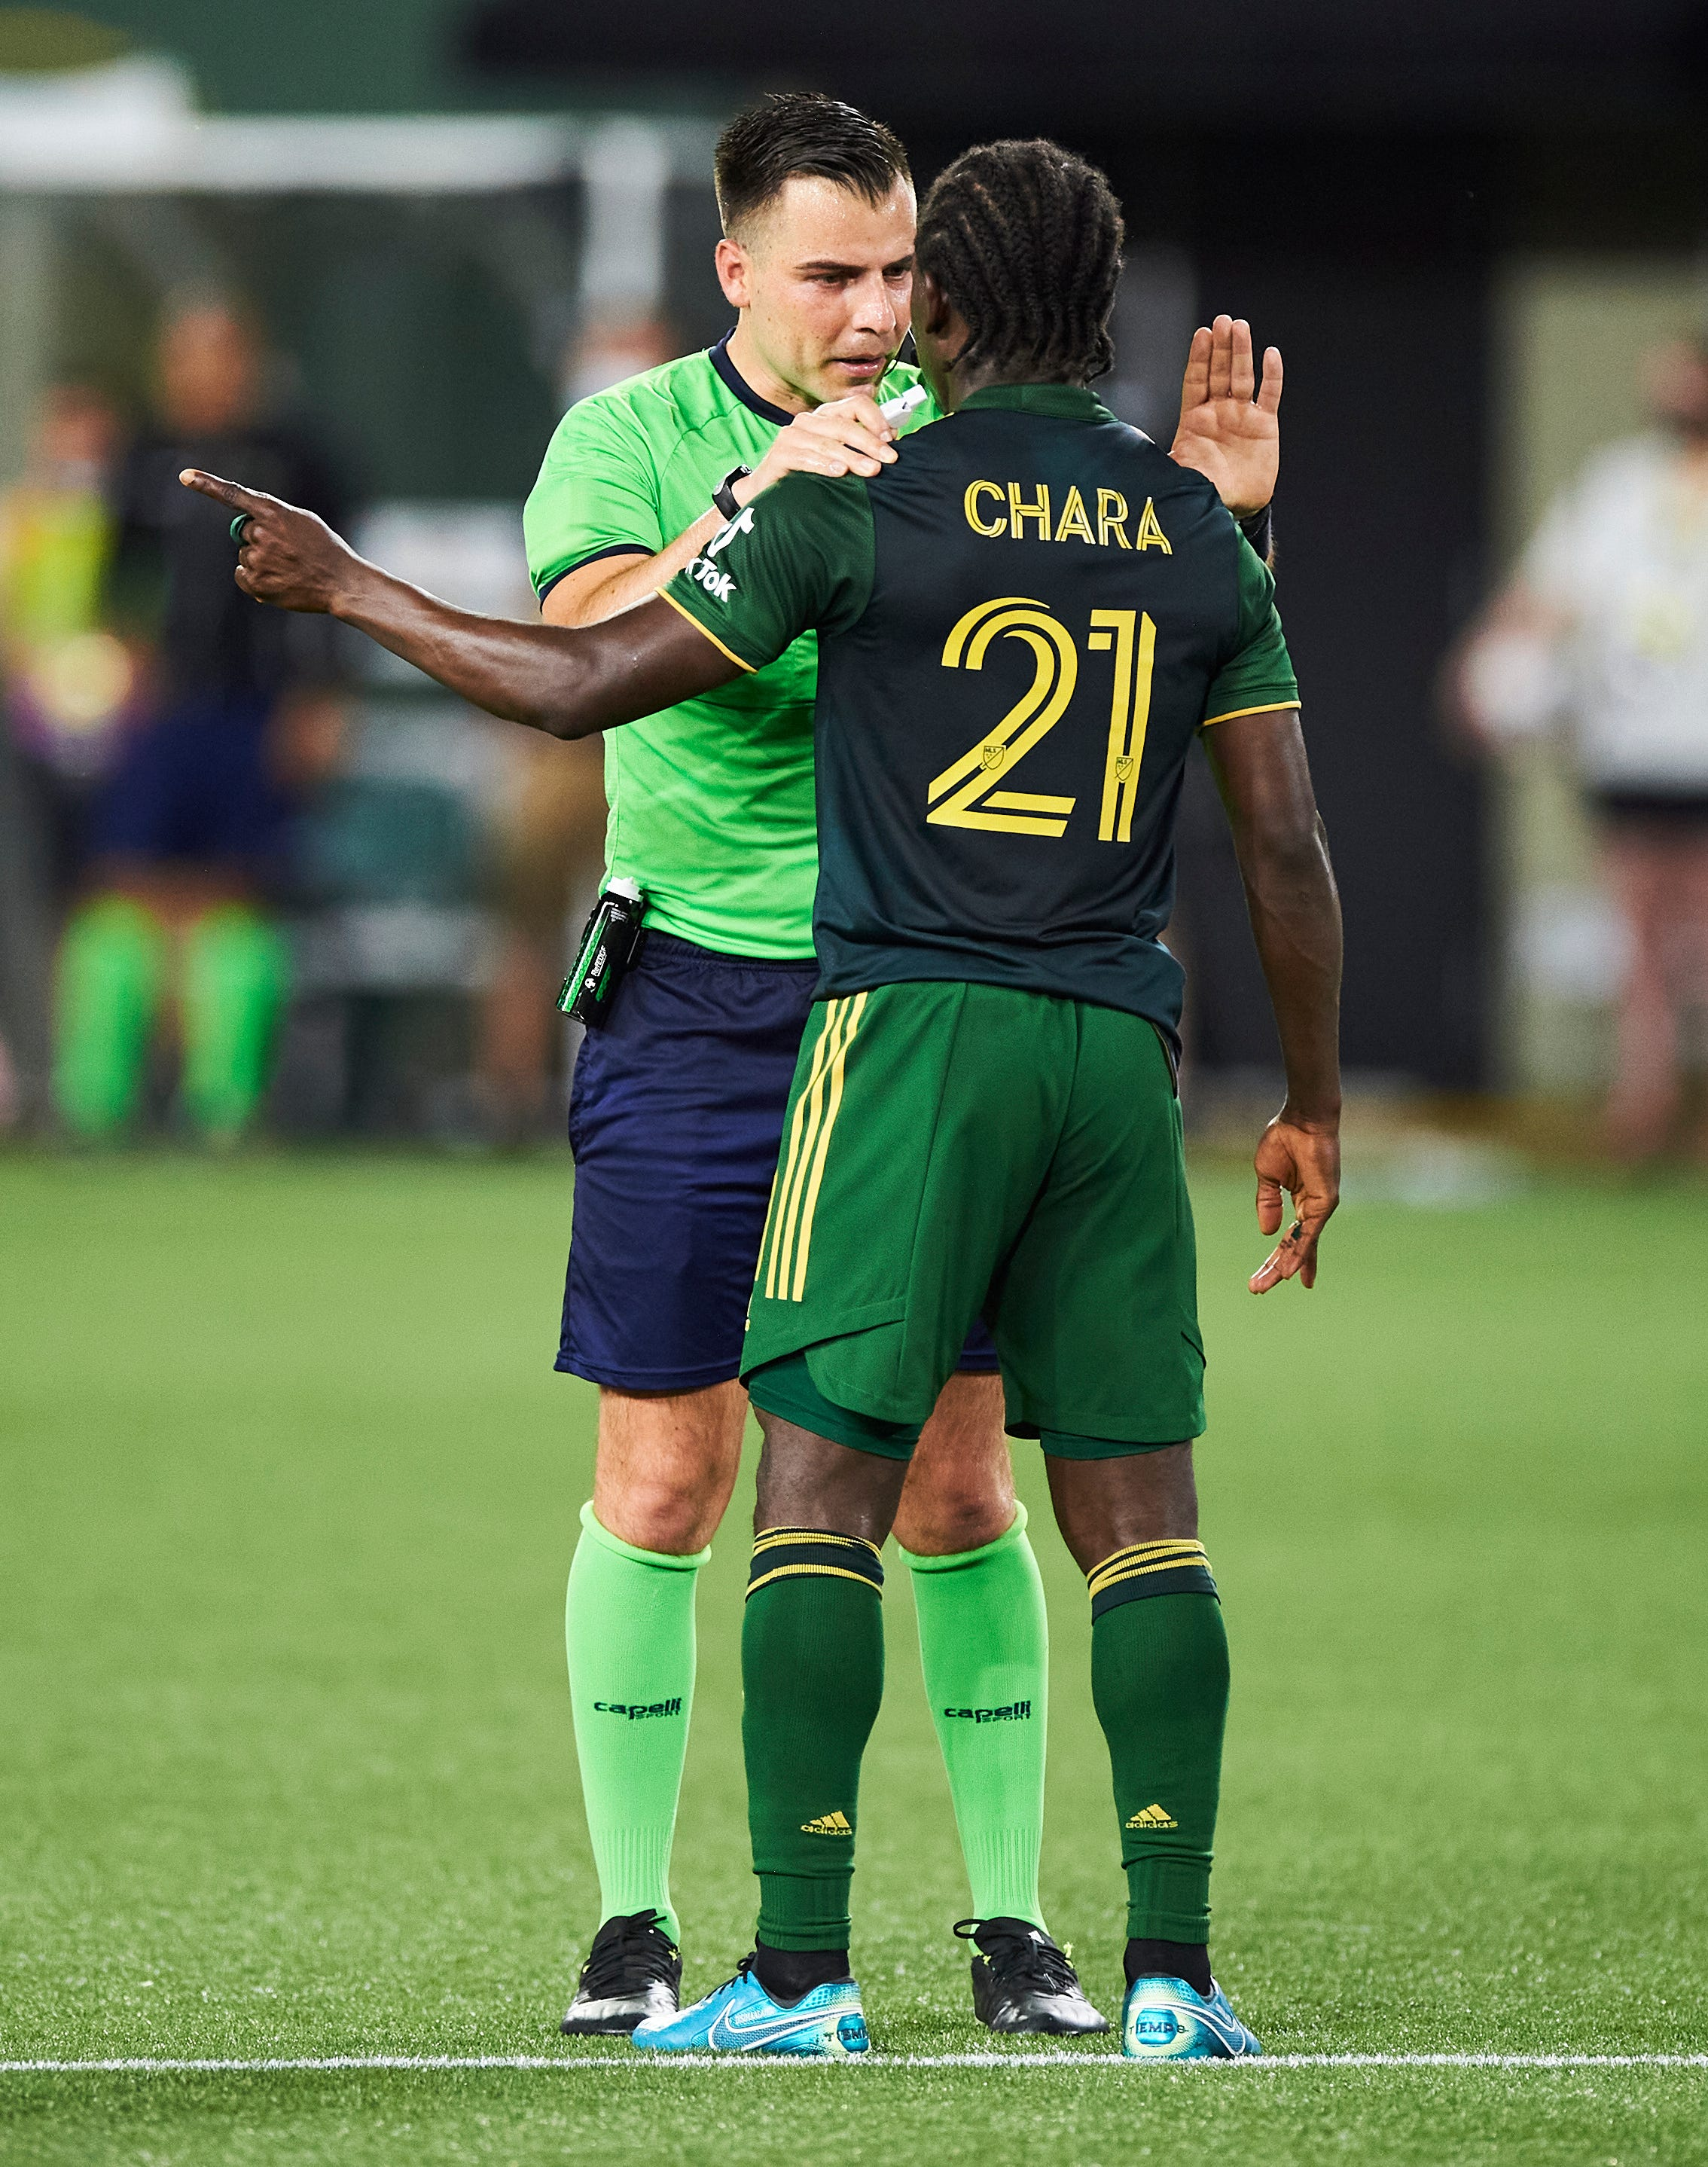 MLS: League investigation into allegation of racist taunt against Portland Timbers player inconclusive